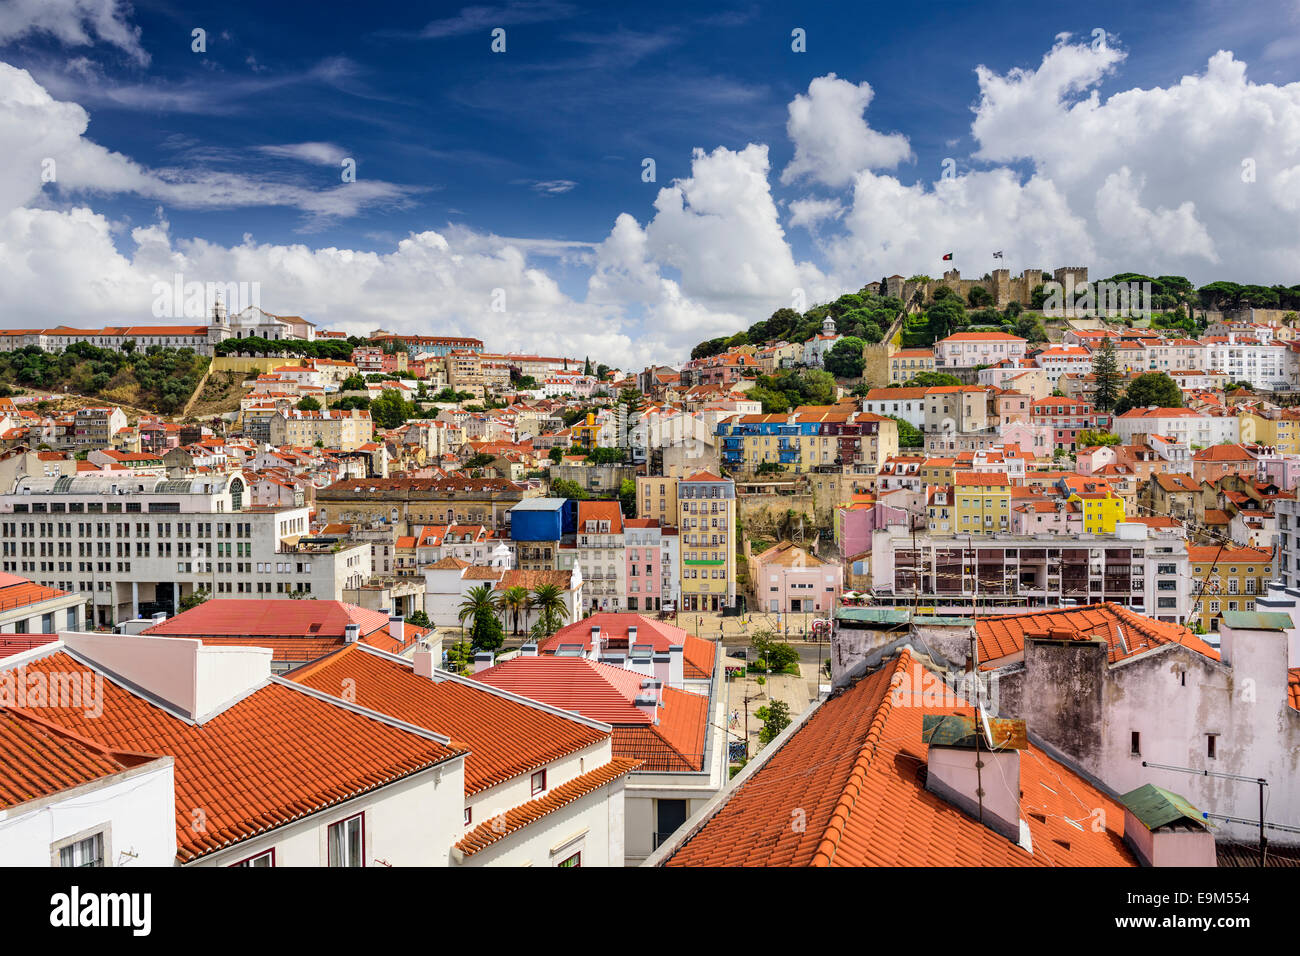 Lisbon, Portugal skyline at Sao Jorge Castle and Graca District. - Stock Image